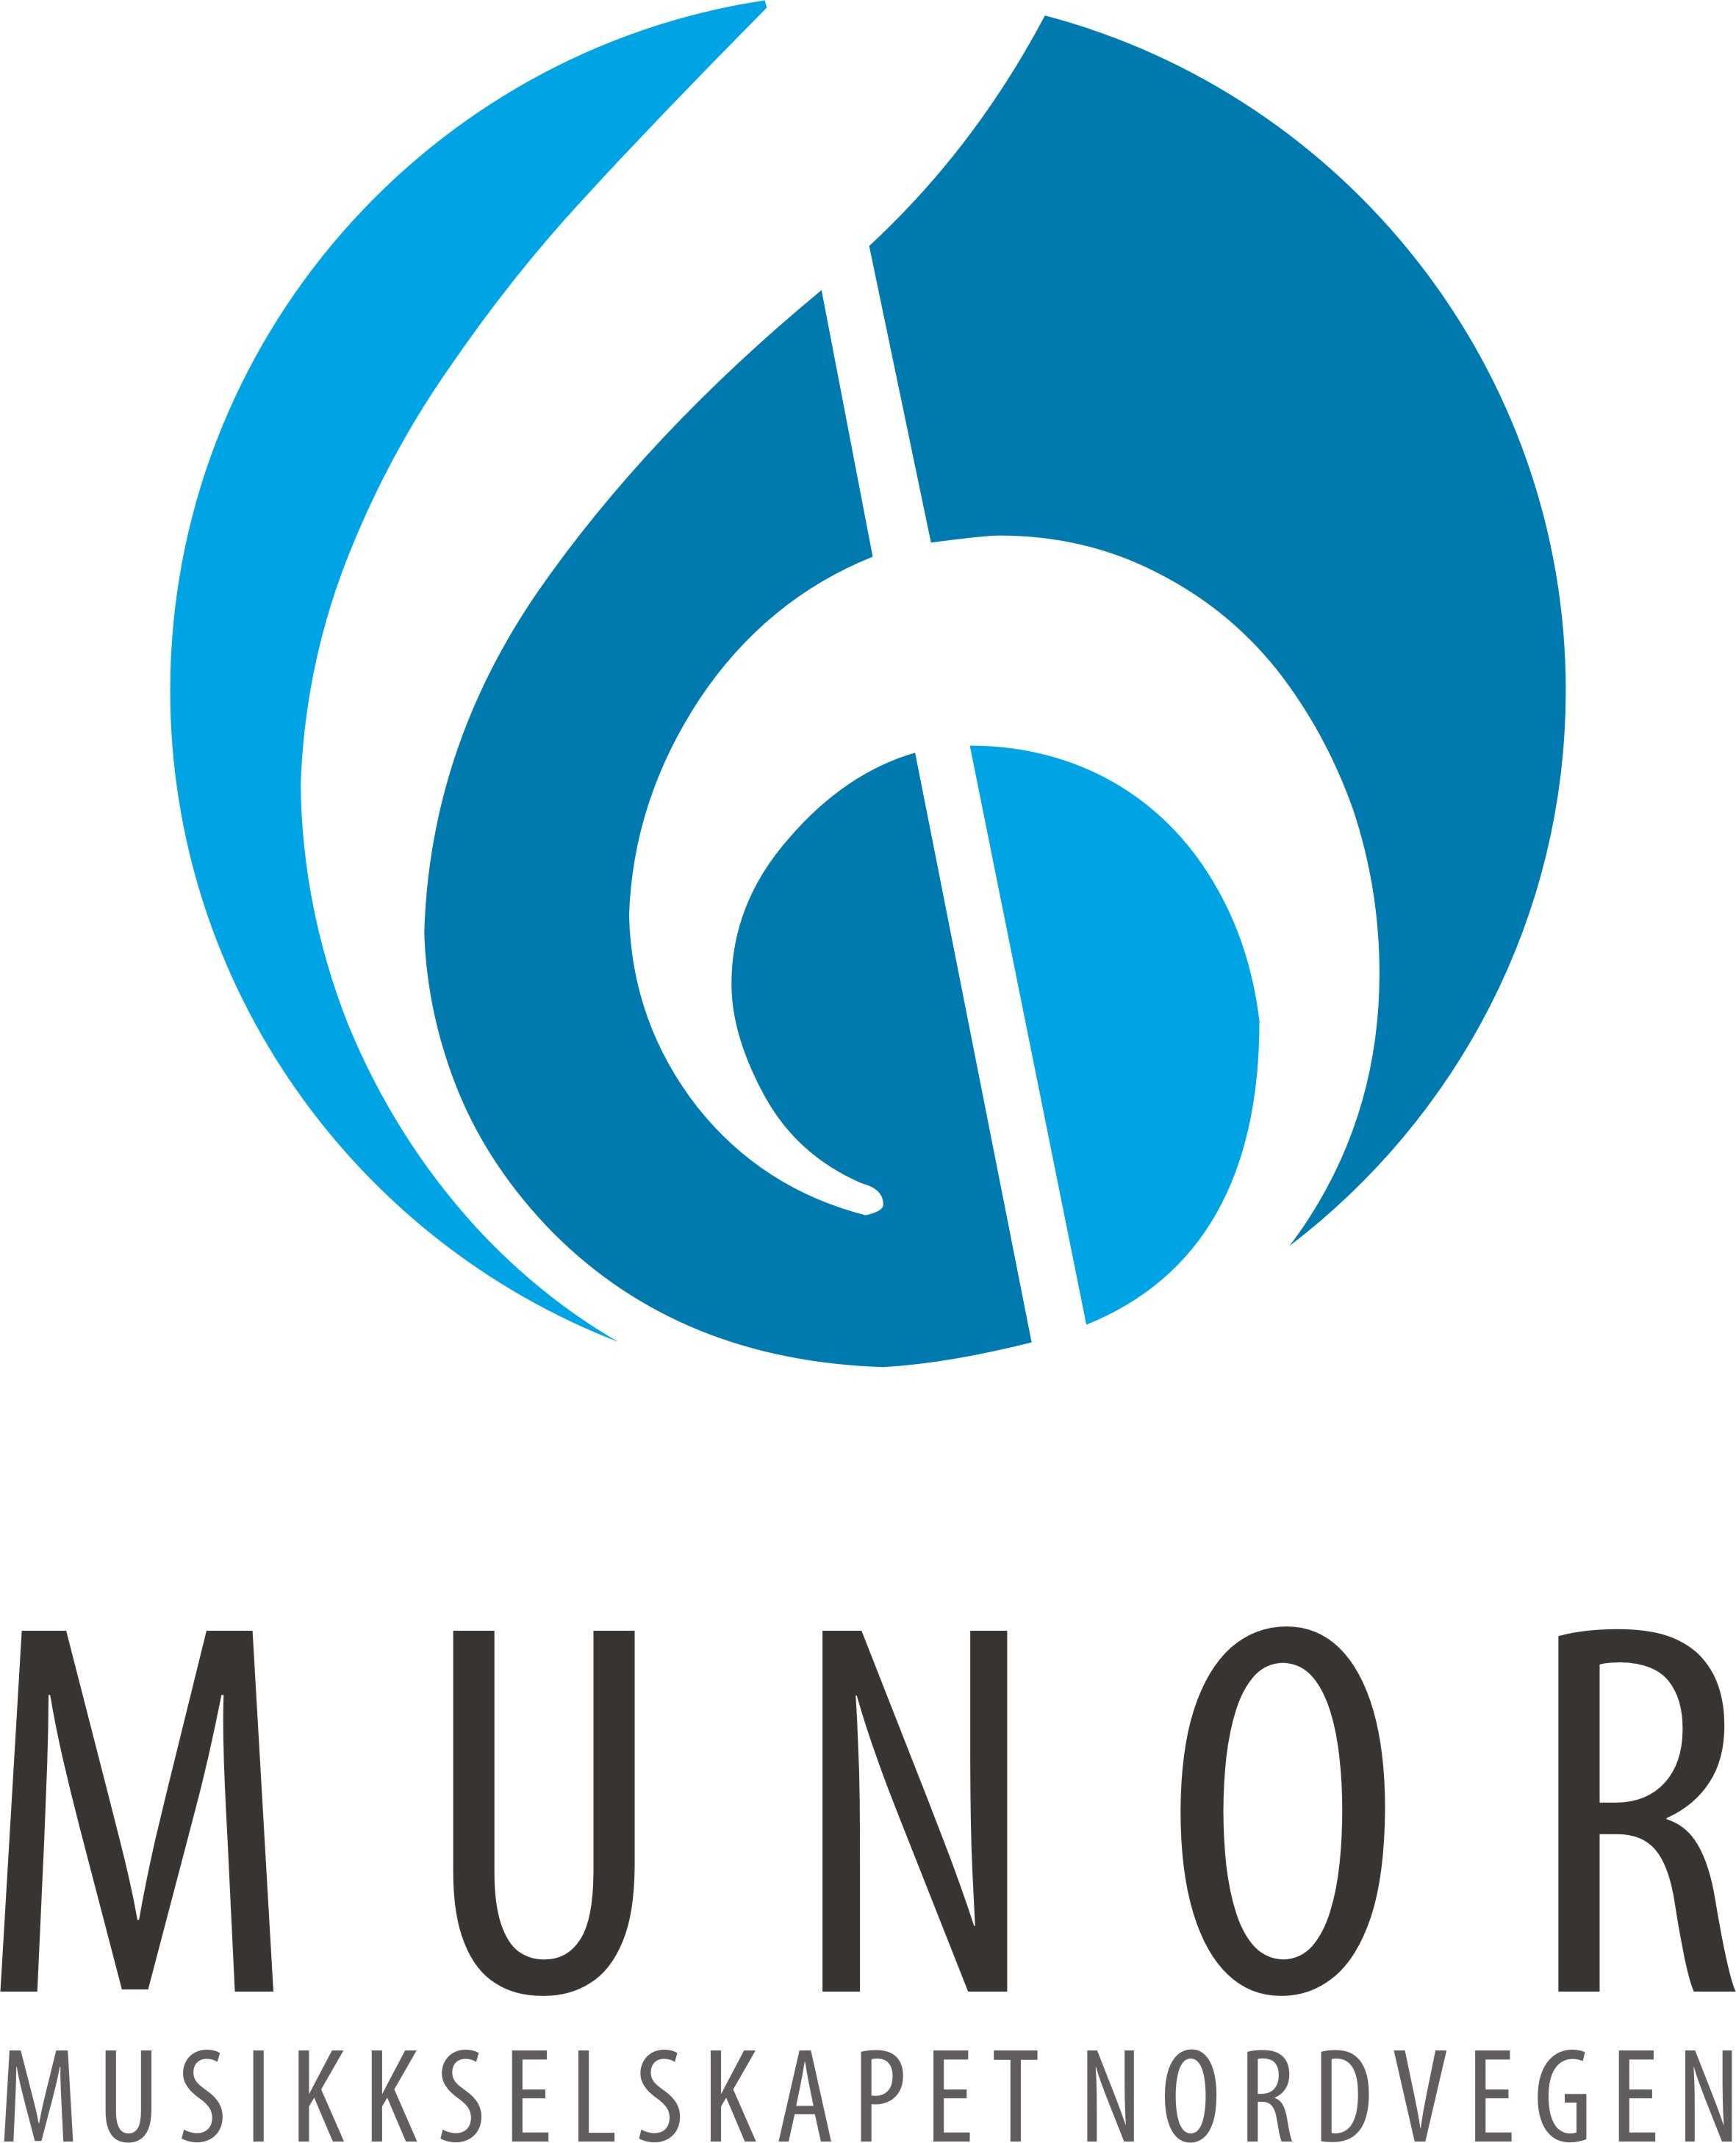 Munor logo hires 1